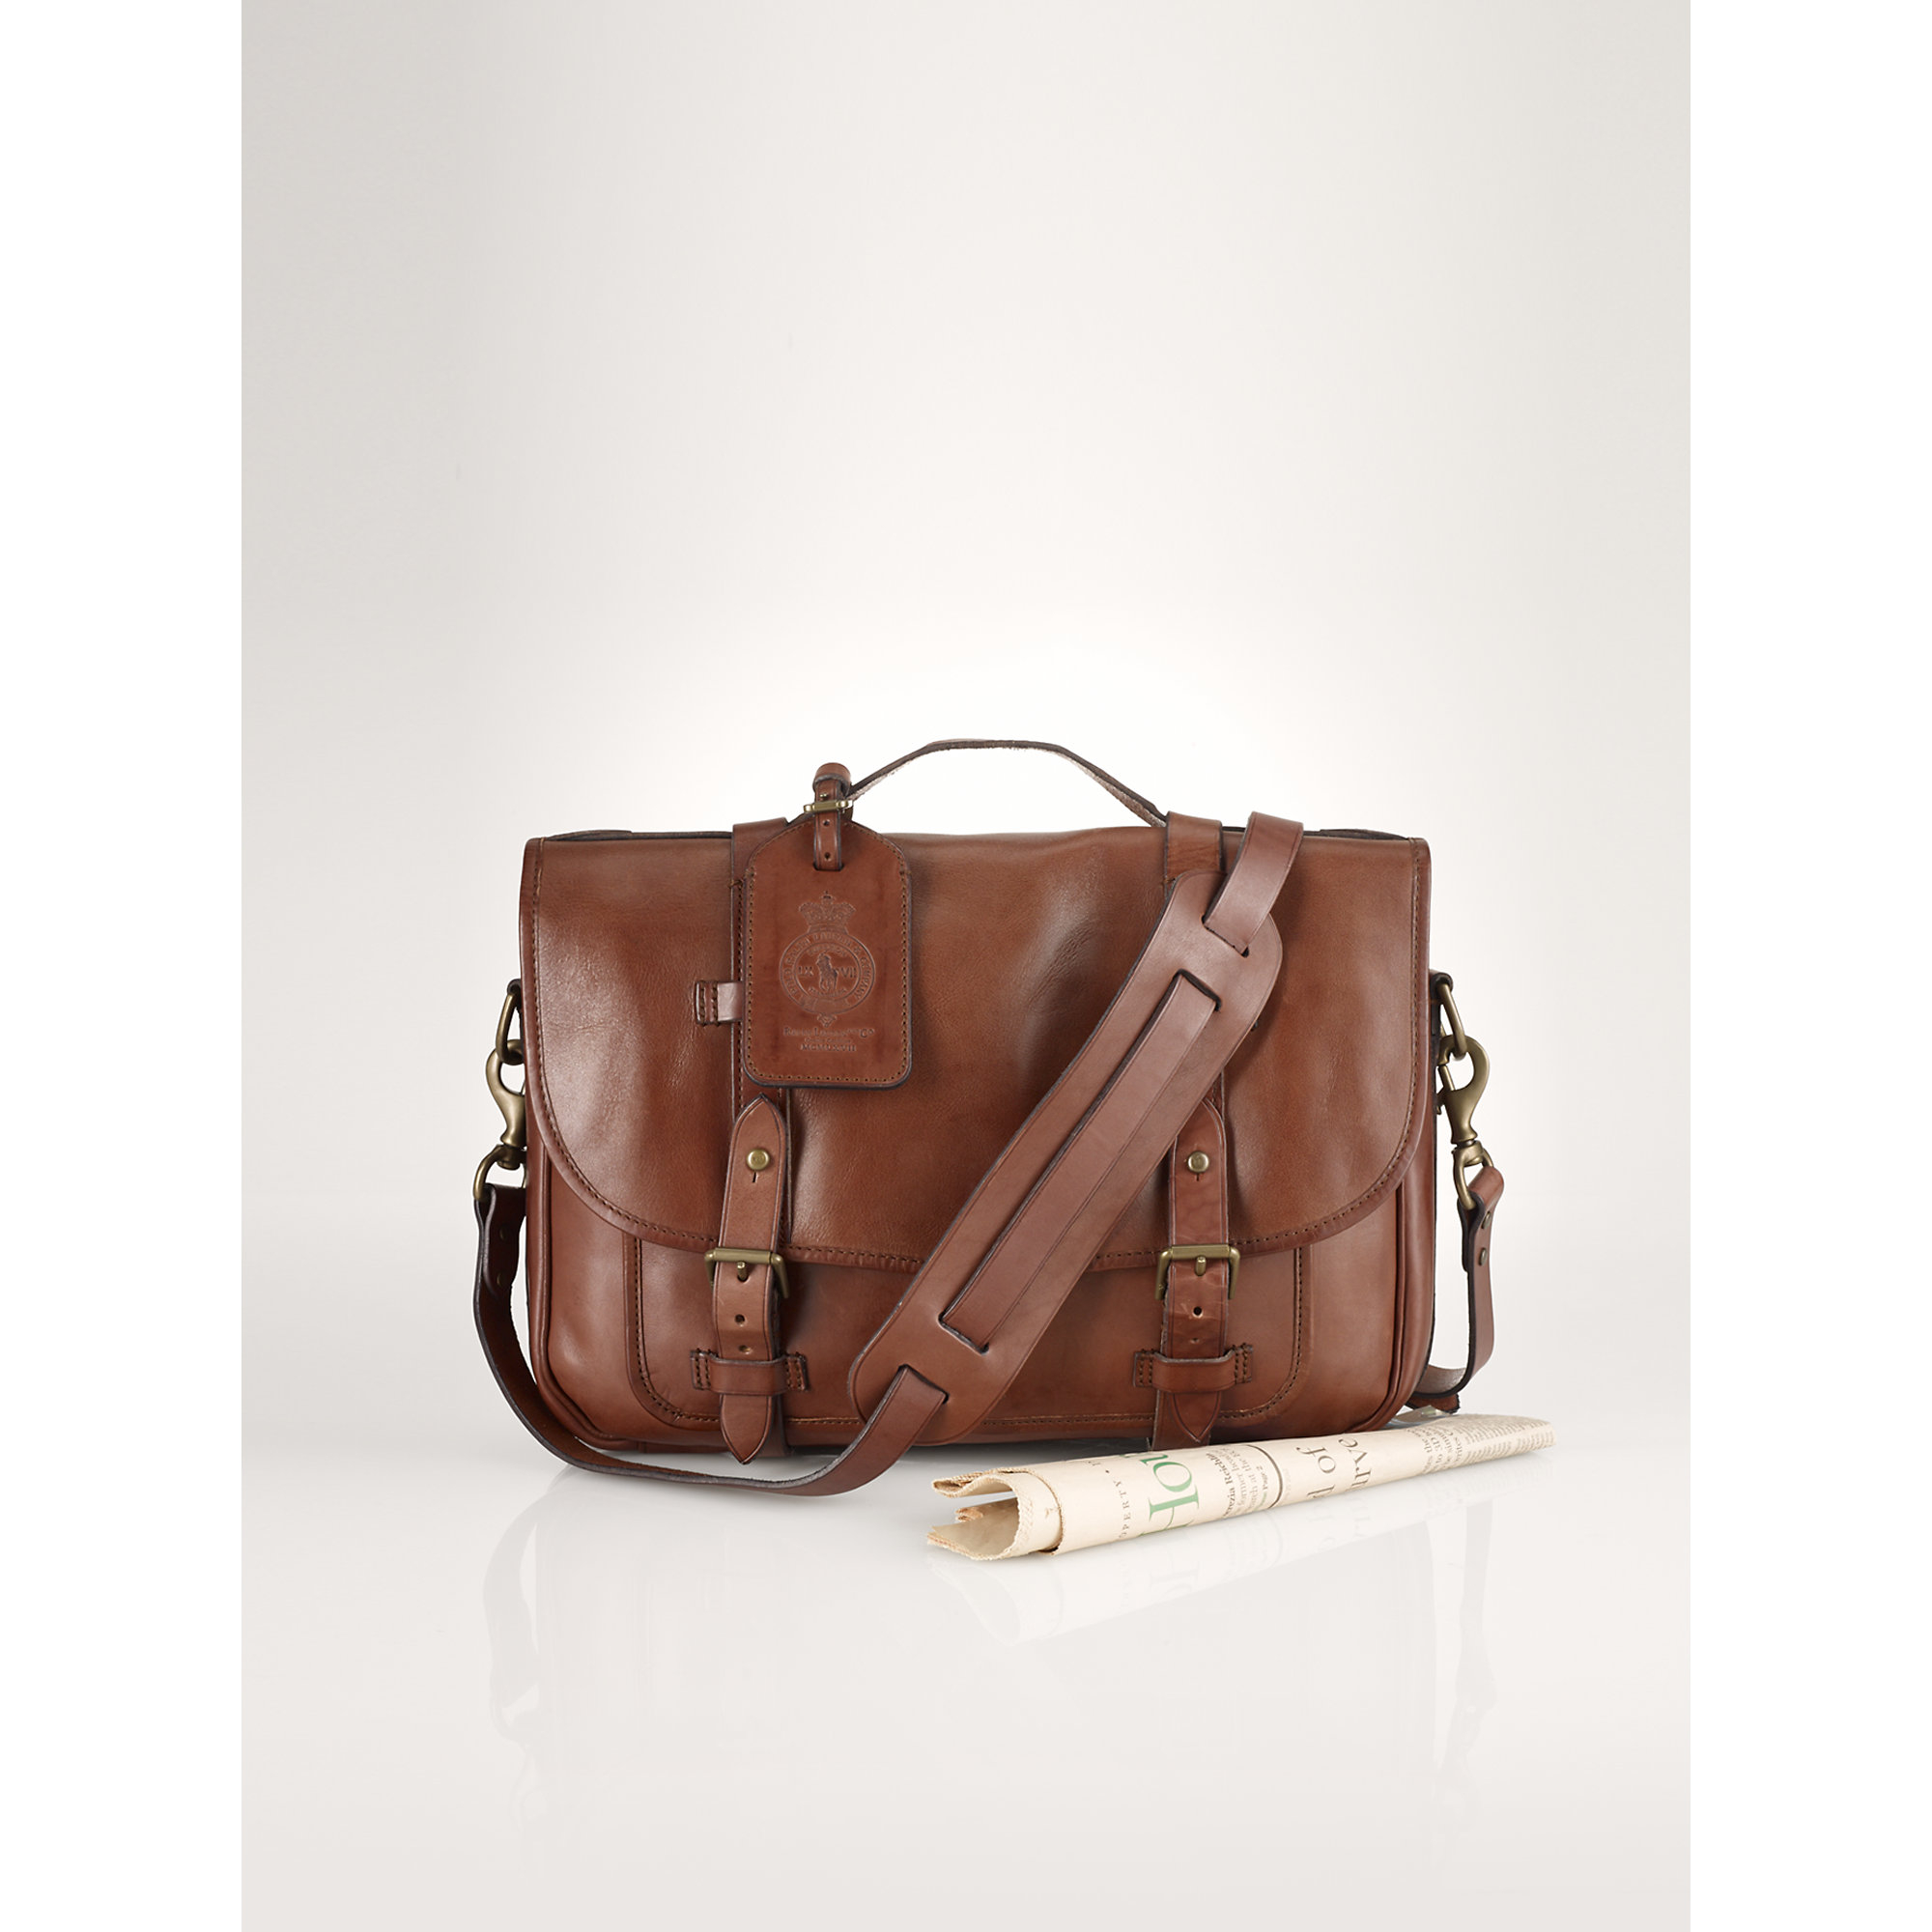 Lyst - Polo Ralph Lauren Small Leather Messenger Bag in Brown for Men 1fc936663eea0